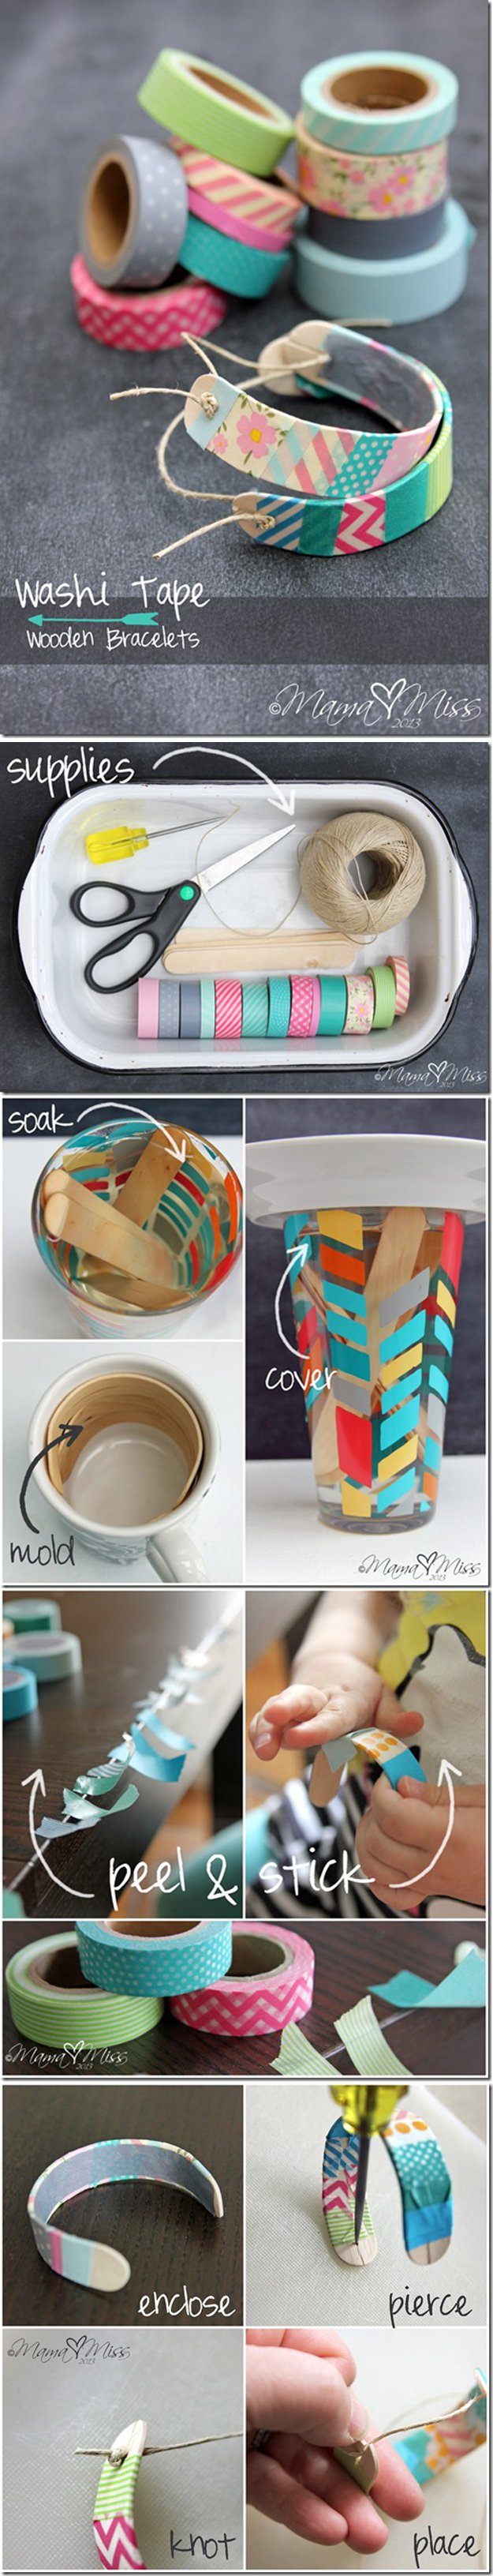 DIY Washi Tape Jewelry | http://diyready.com/100-creative-ways-to-use-washi-tape/